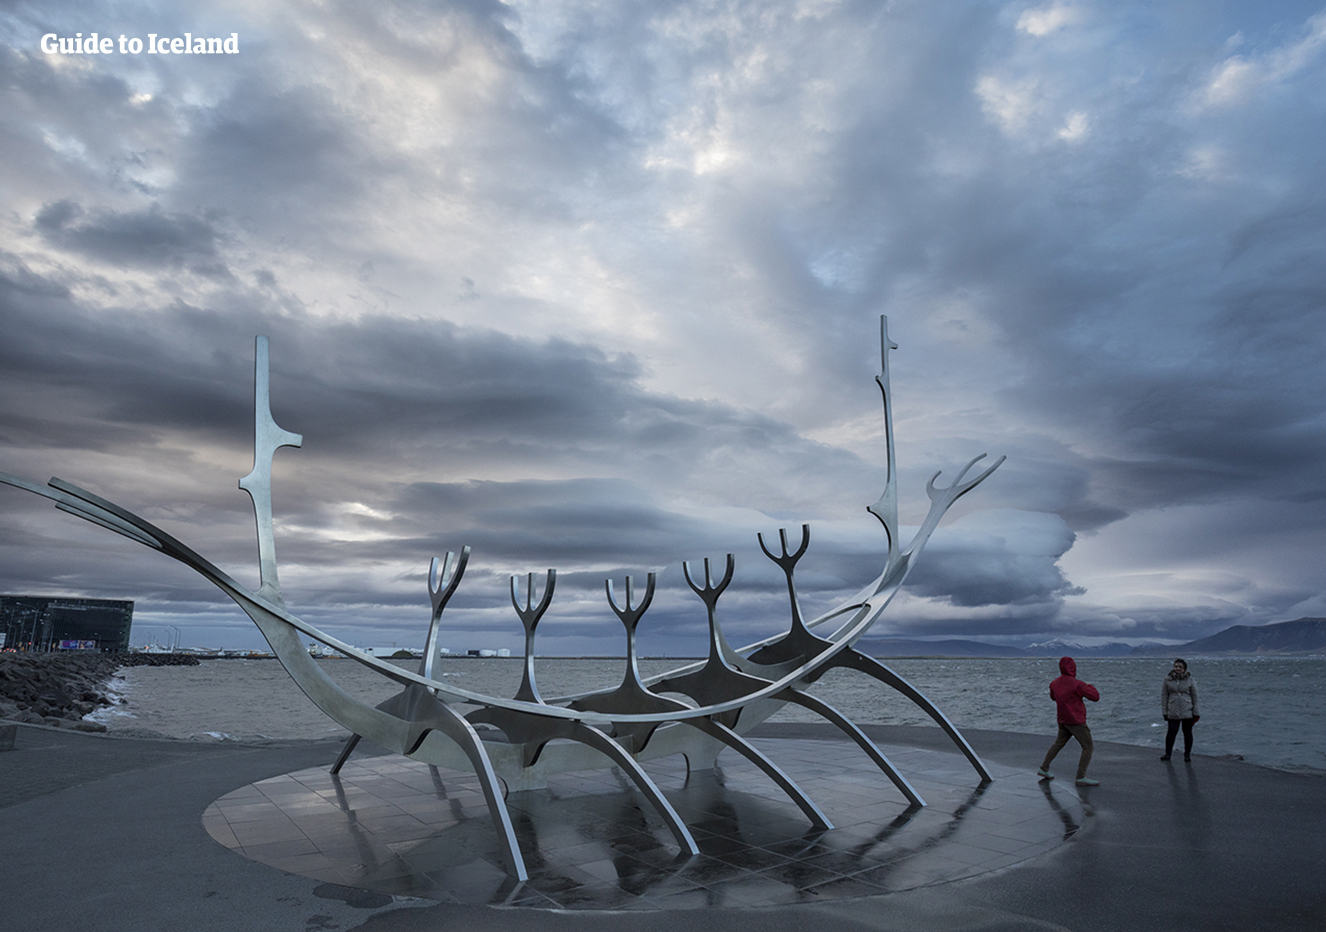 The iconic Sun Voyager sculpture in Reykjavík.